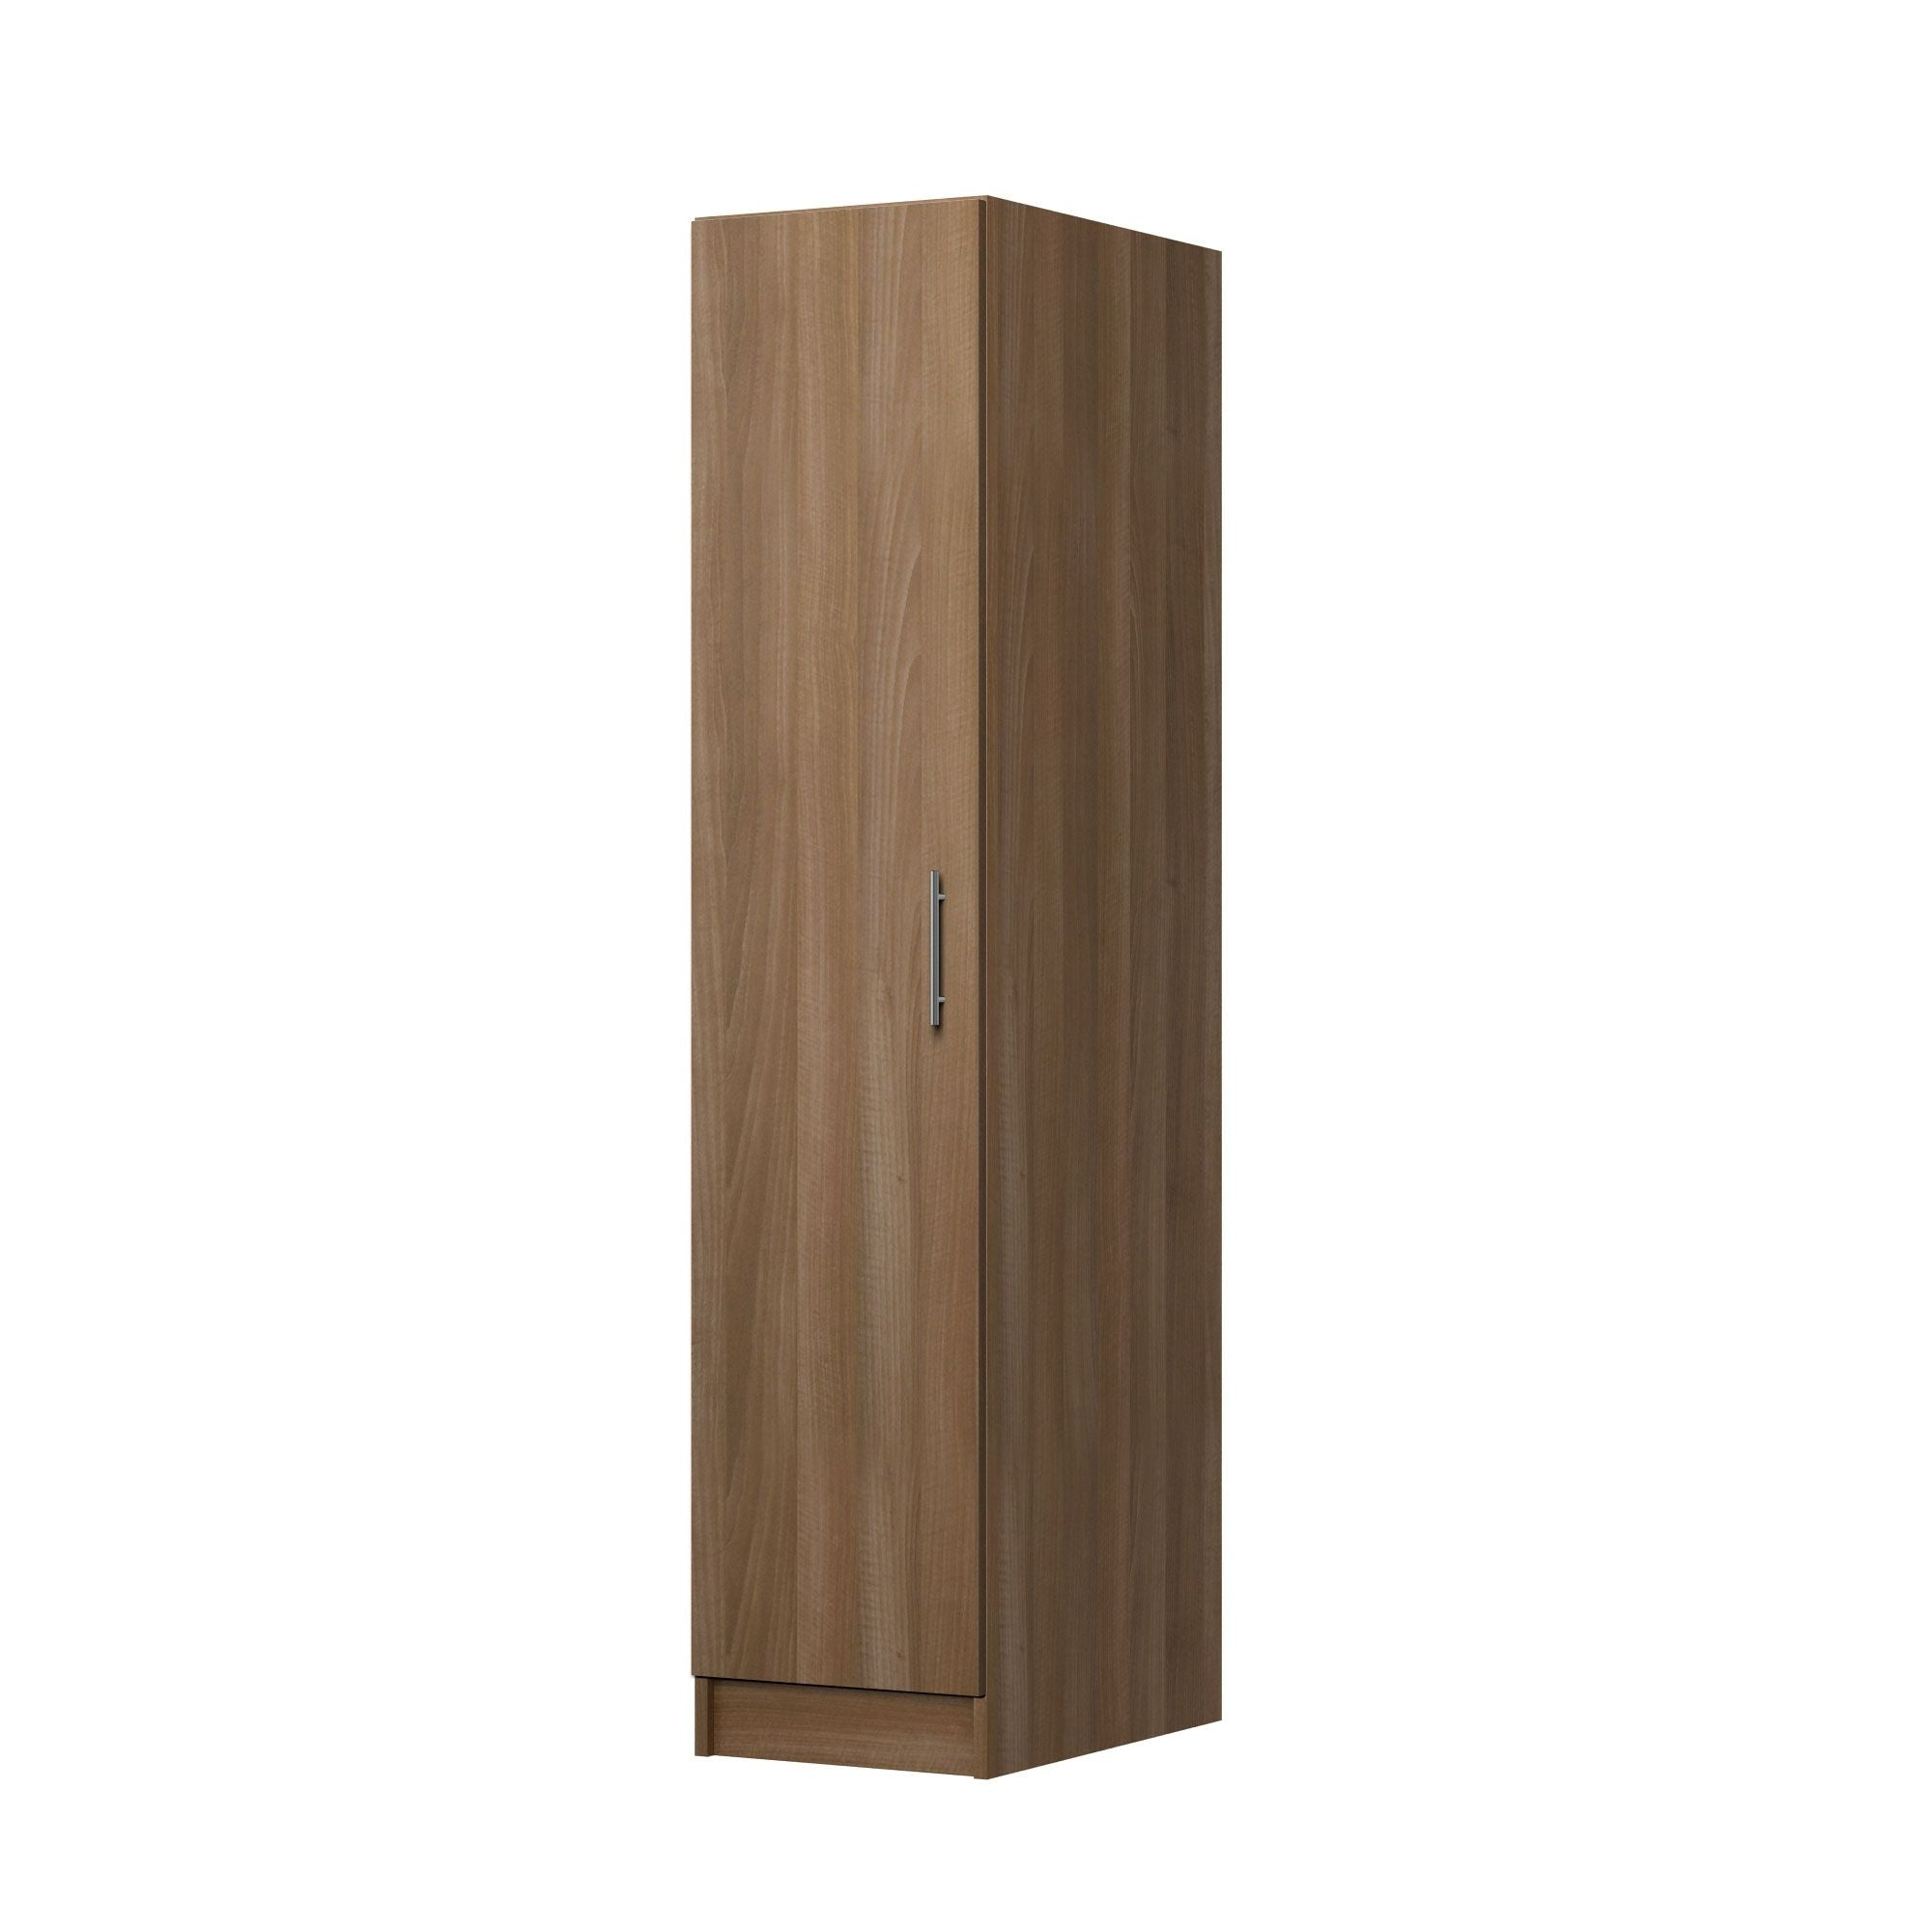 1 Door Wardrobe - Long Hanging